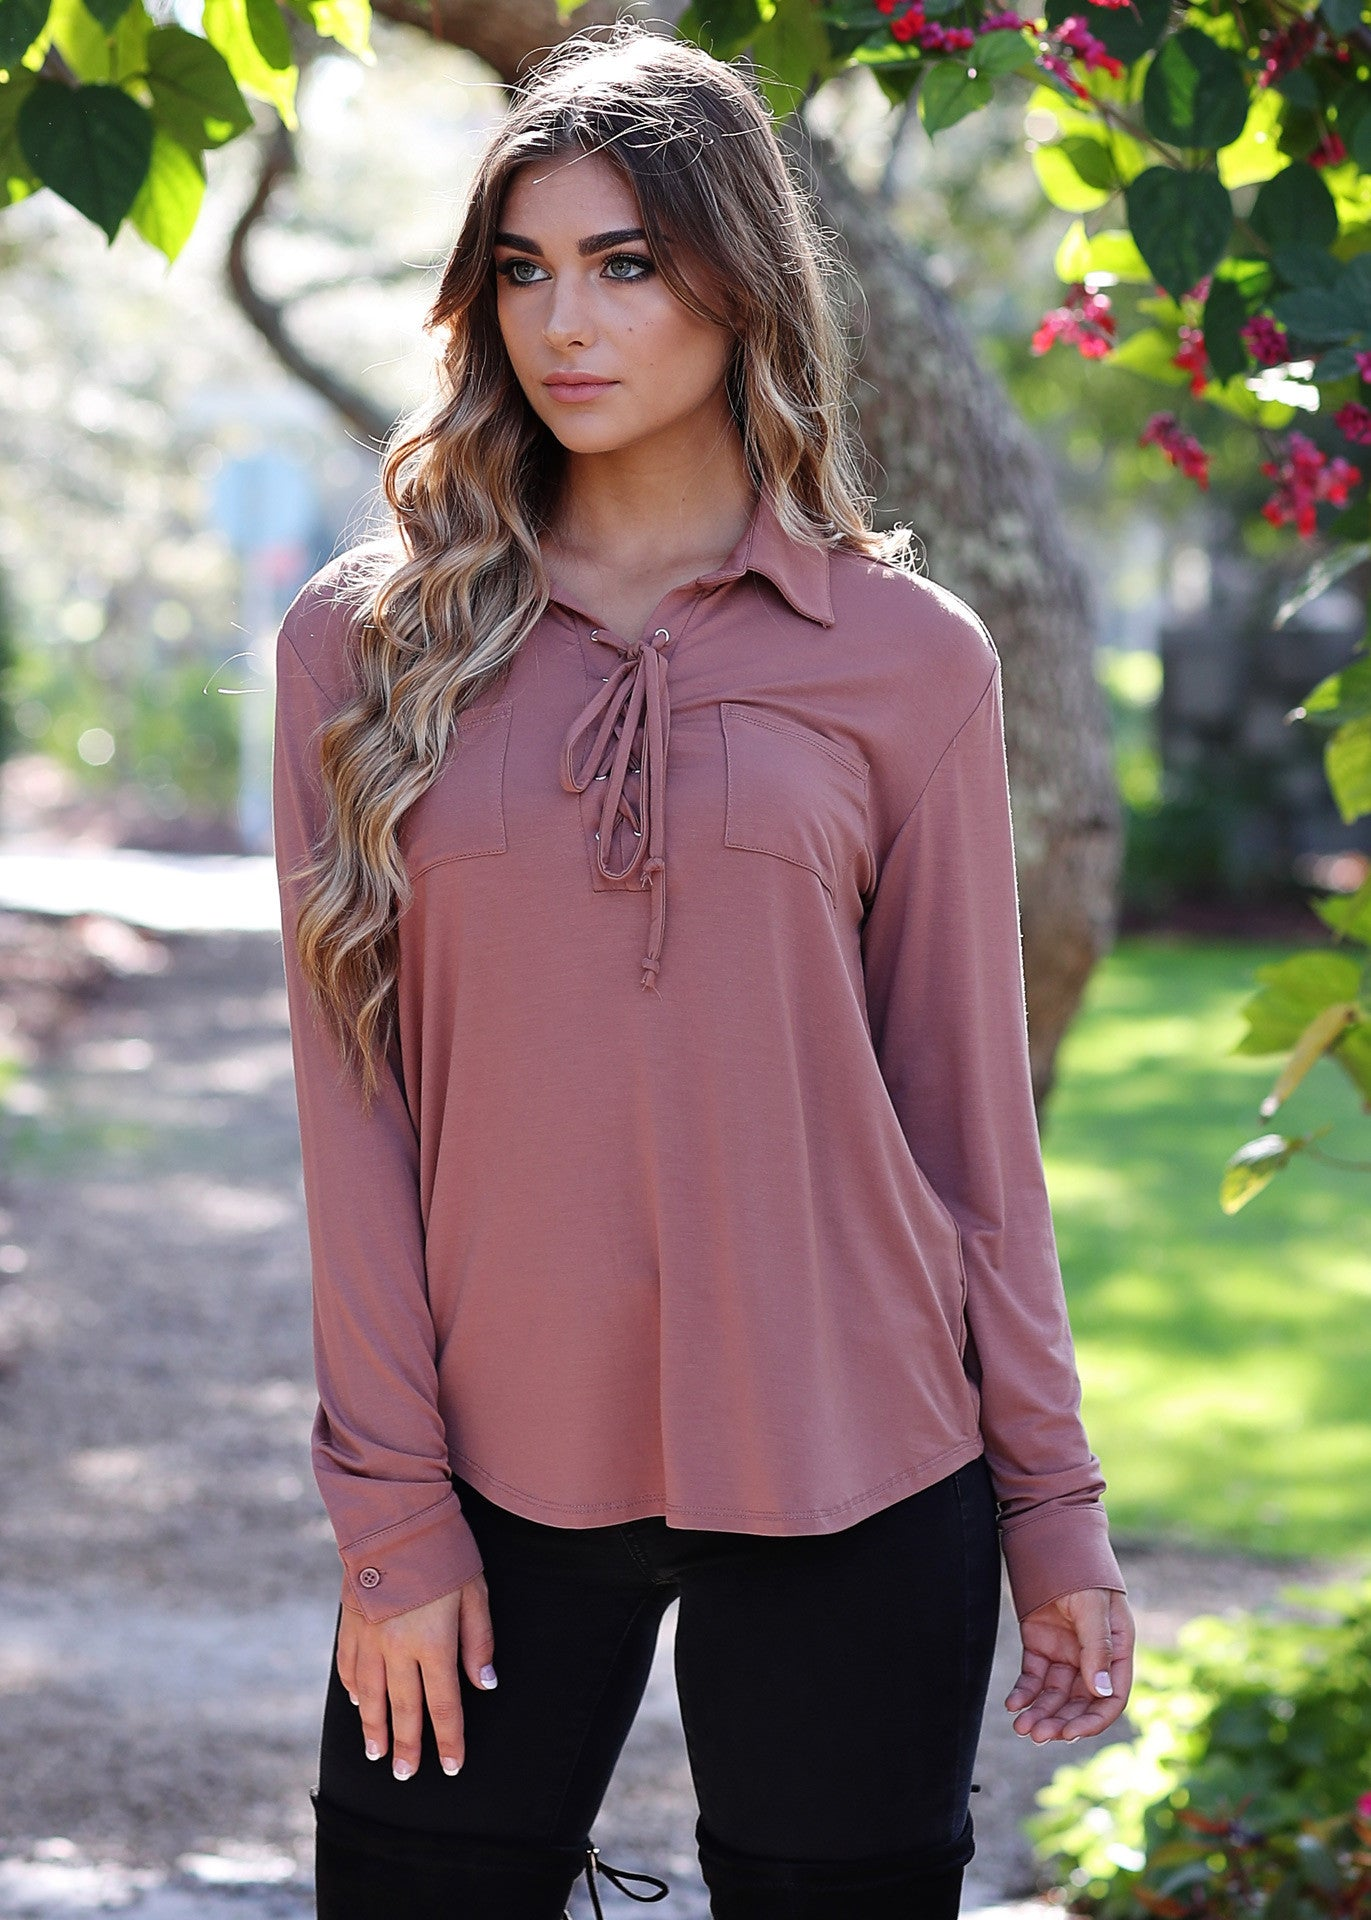 Good Vibes Lace Up Top - Piko Clearance Center - 2